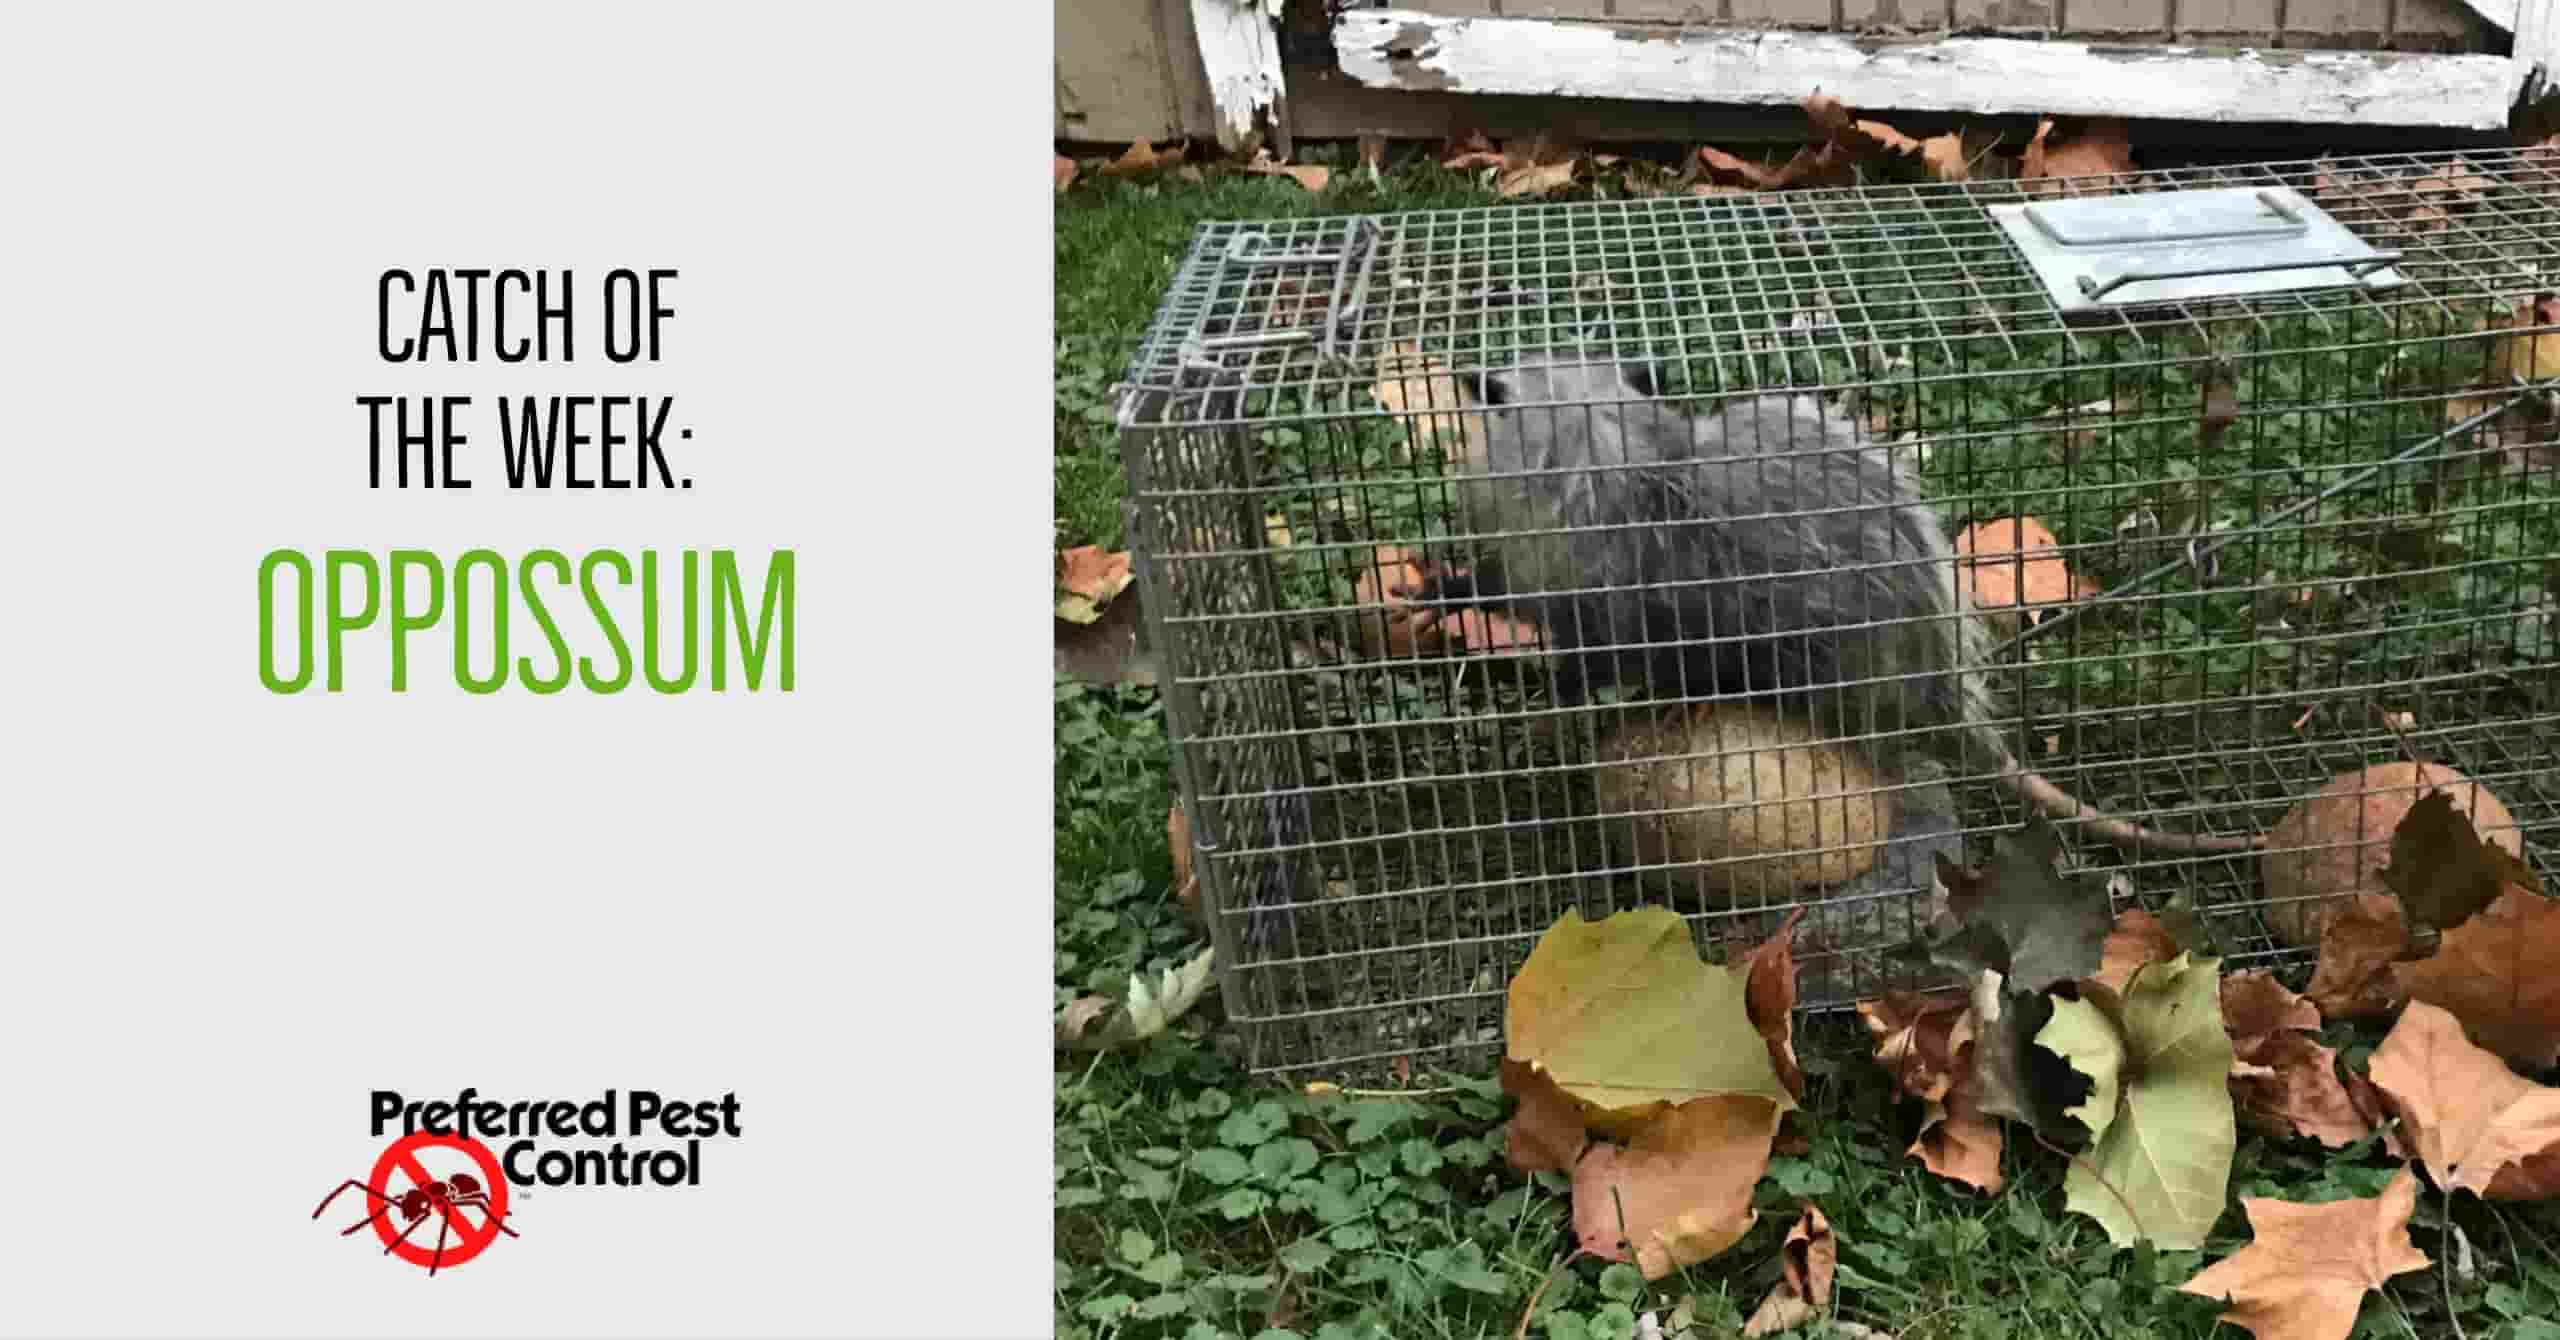 catch of the week: opossum